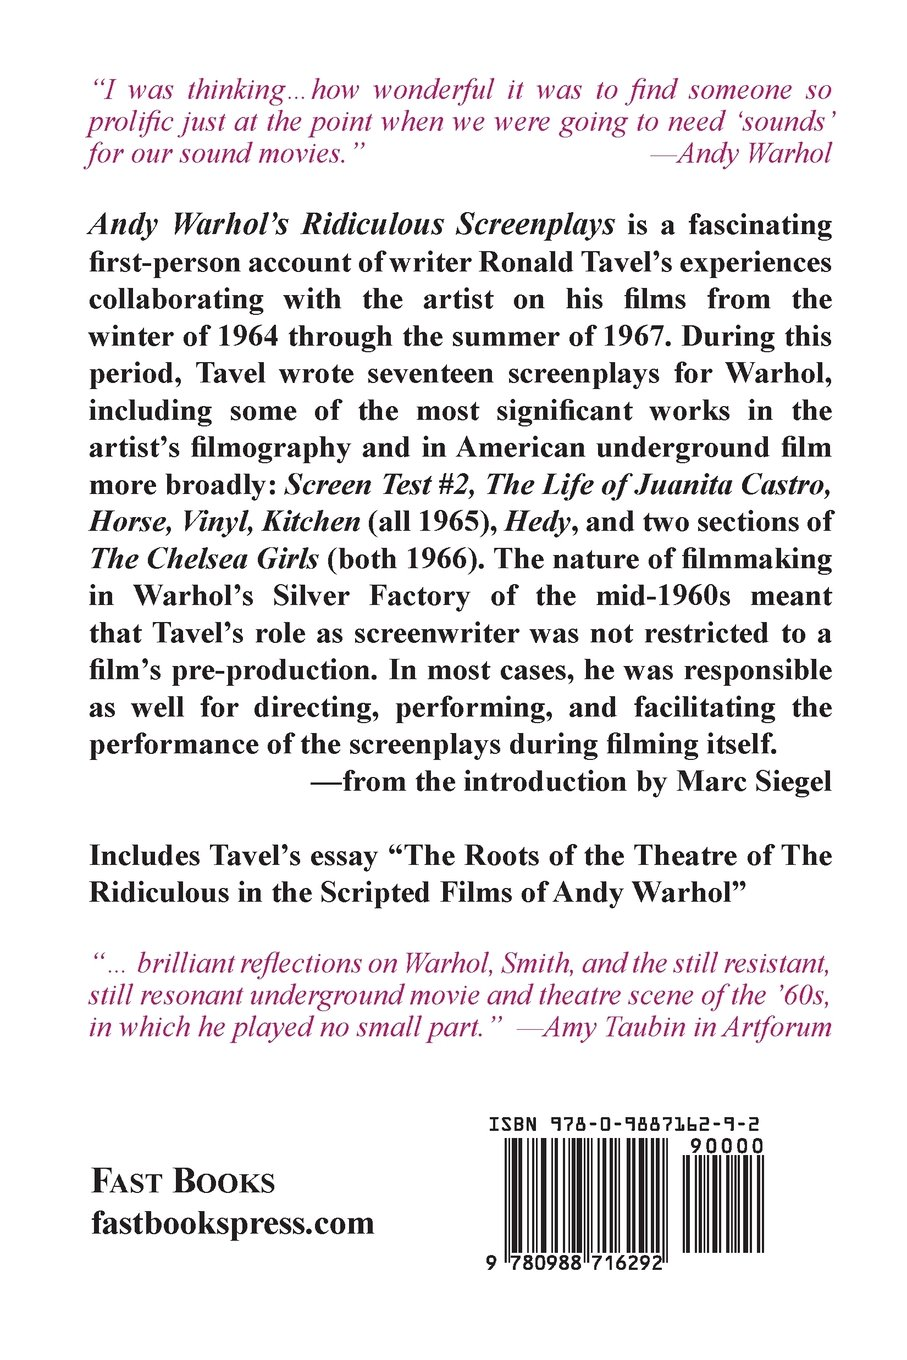 andy warhol s ridiculous screenplays ronald tavel  andy warhol s ridiculous screenplays ronald tavel 9780988716292 com books